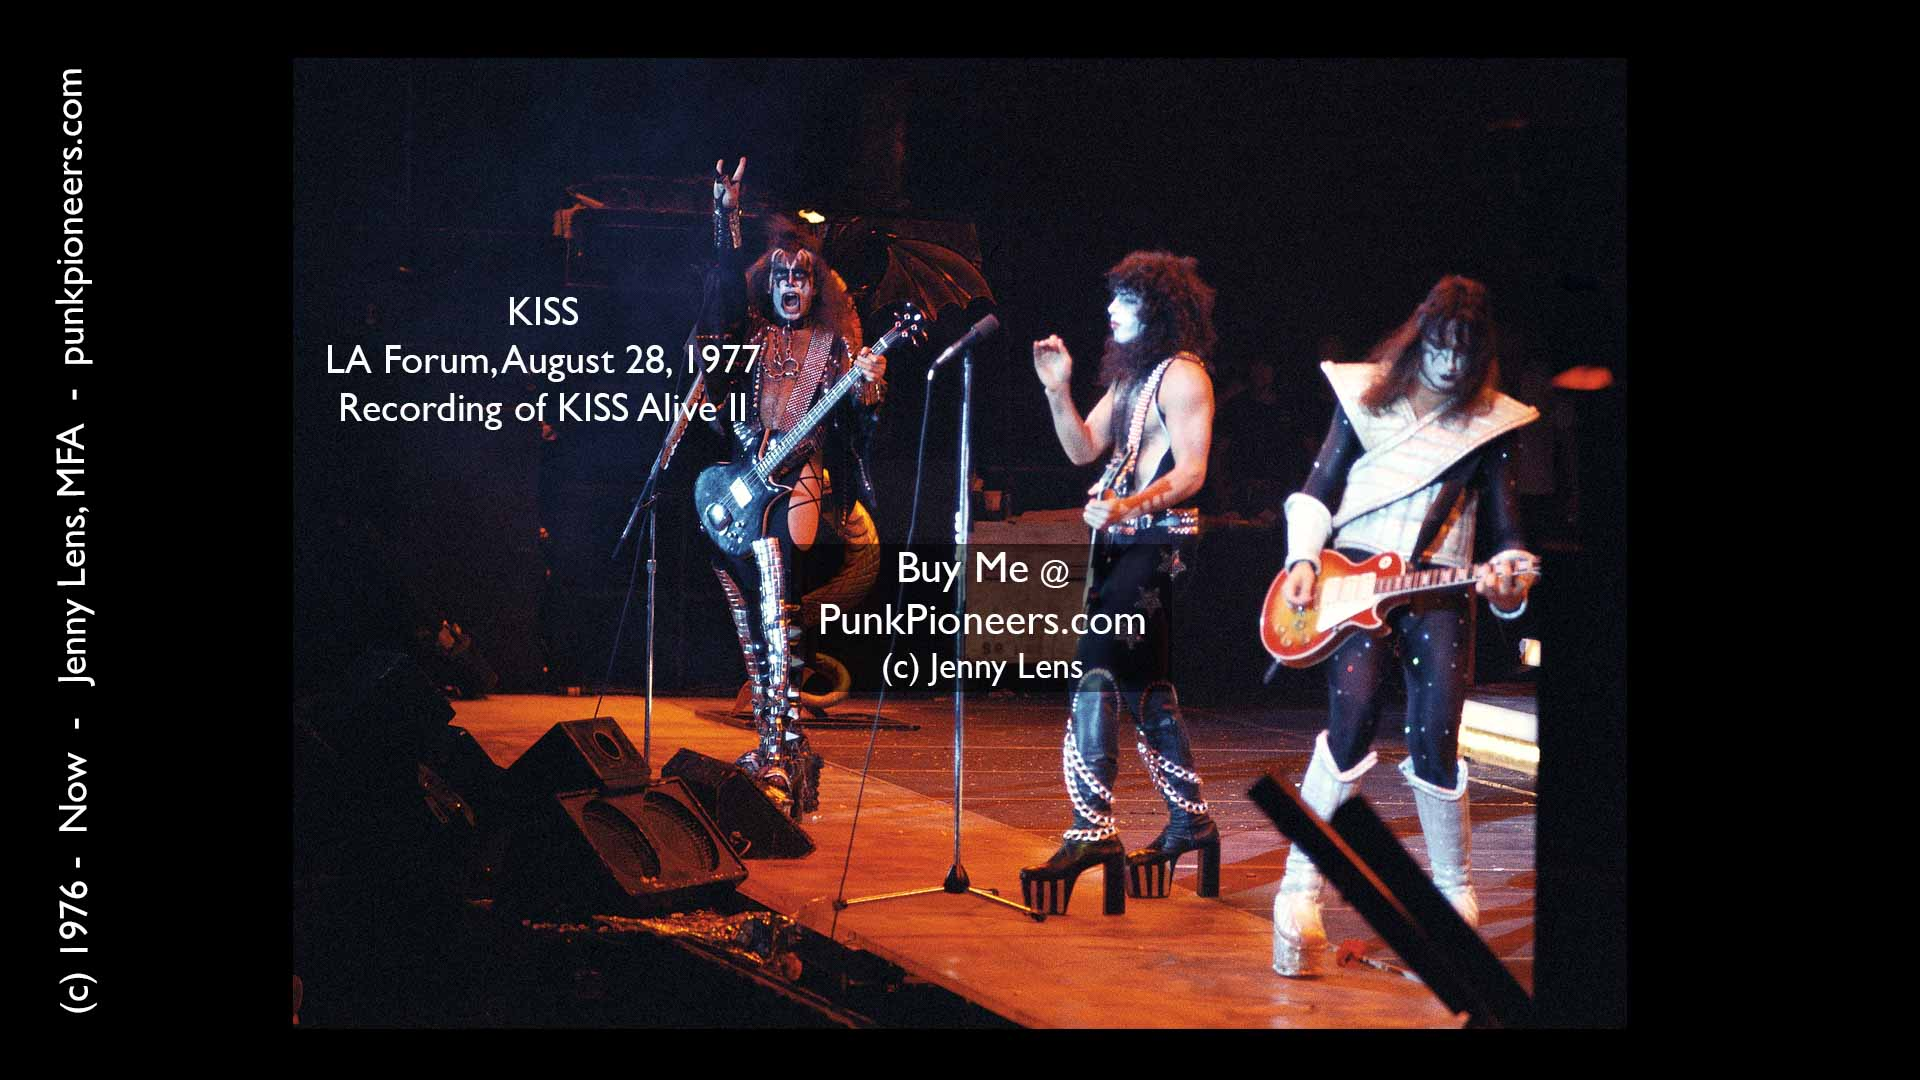 KISS, LA Forum, August 28, 1977, recording of KISS Live II, Jenny Lens, PunkPioneers.com